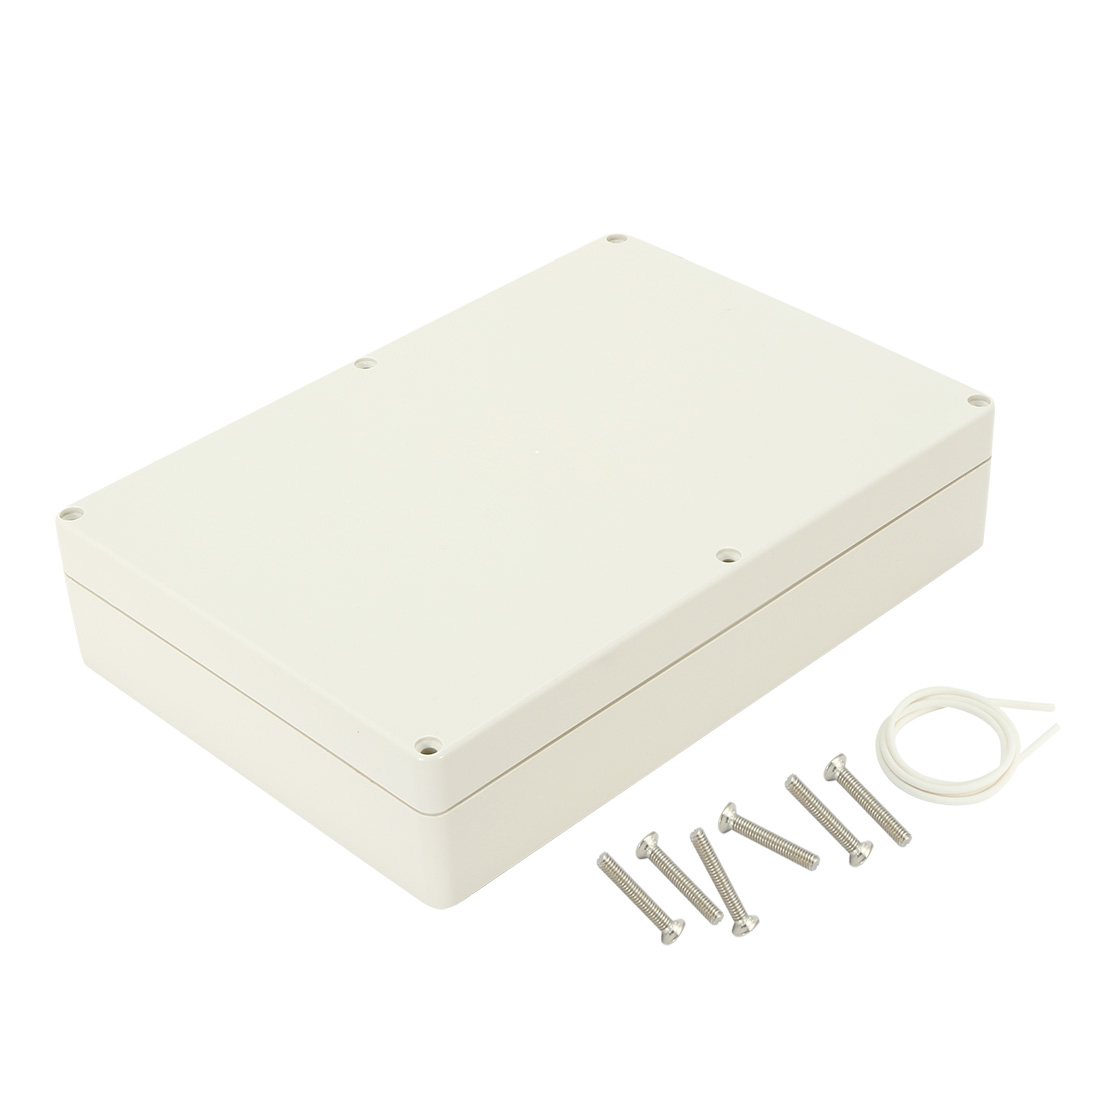 "10.4""x7.2""x2.3""(263mmx182mmx60mm) ABS Junction Box Universal Electric Project Enclosure"